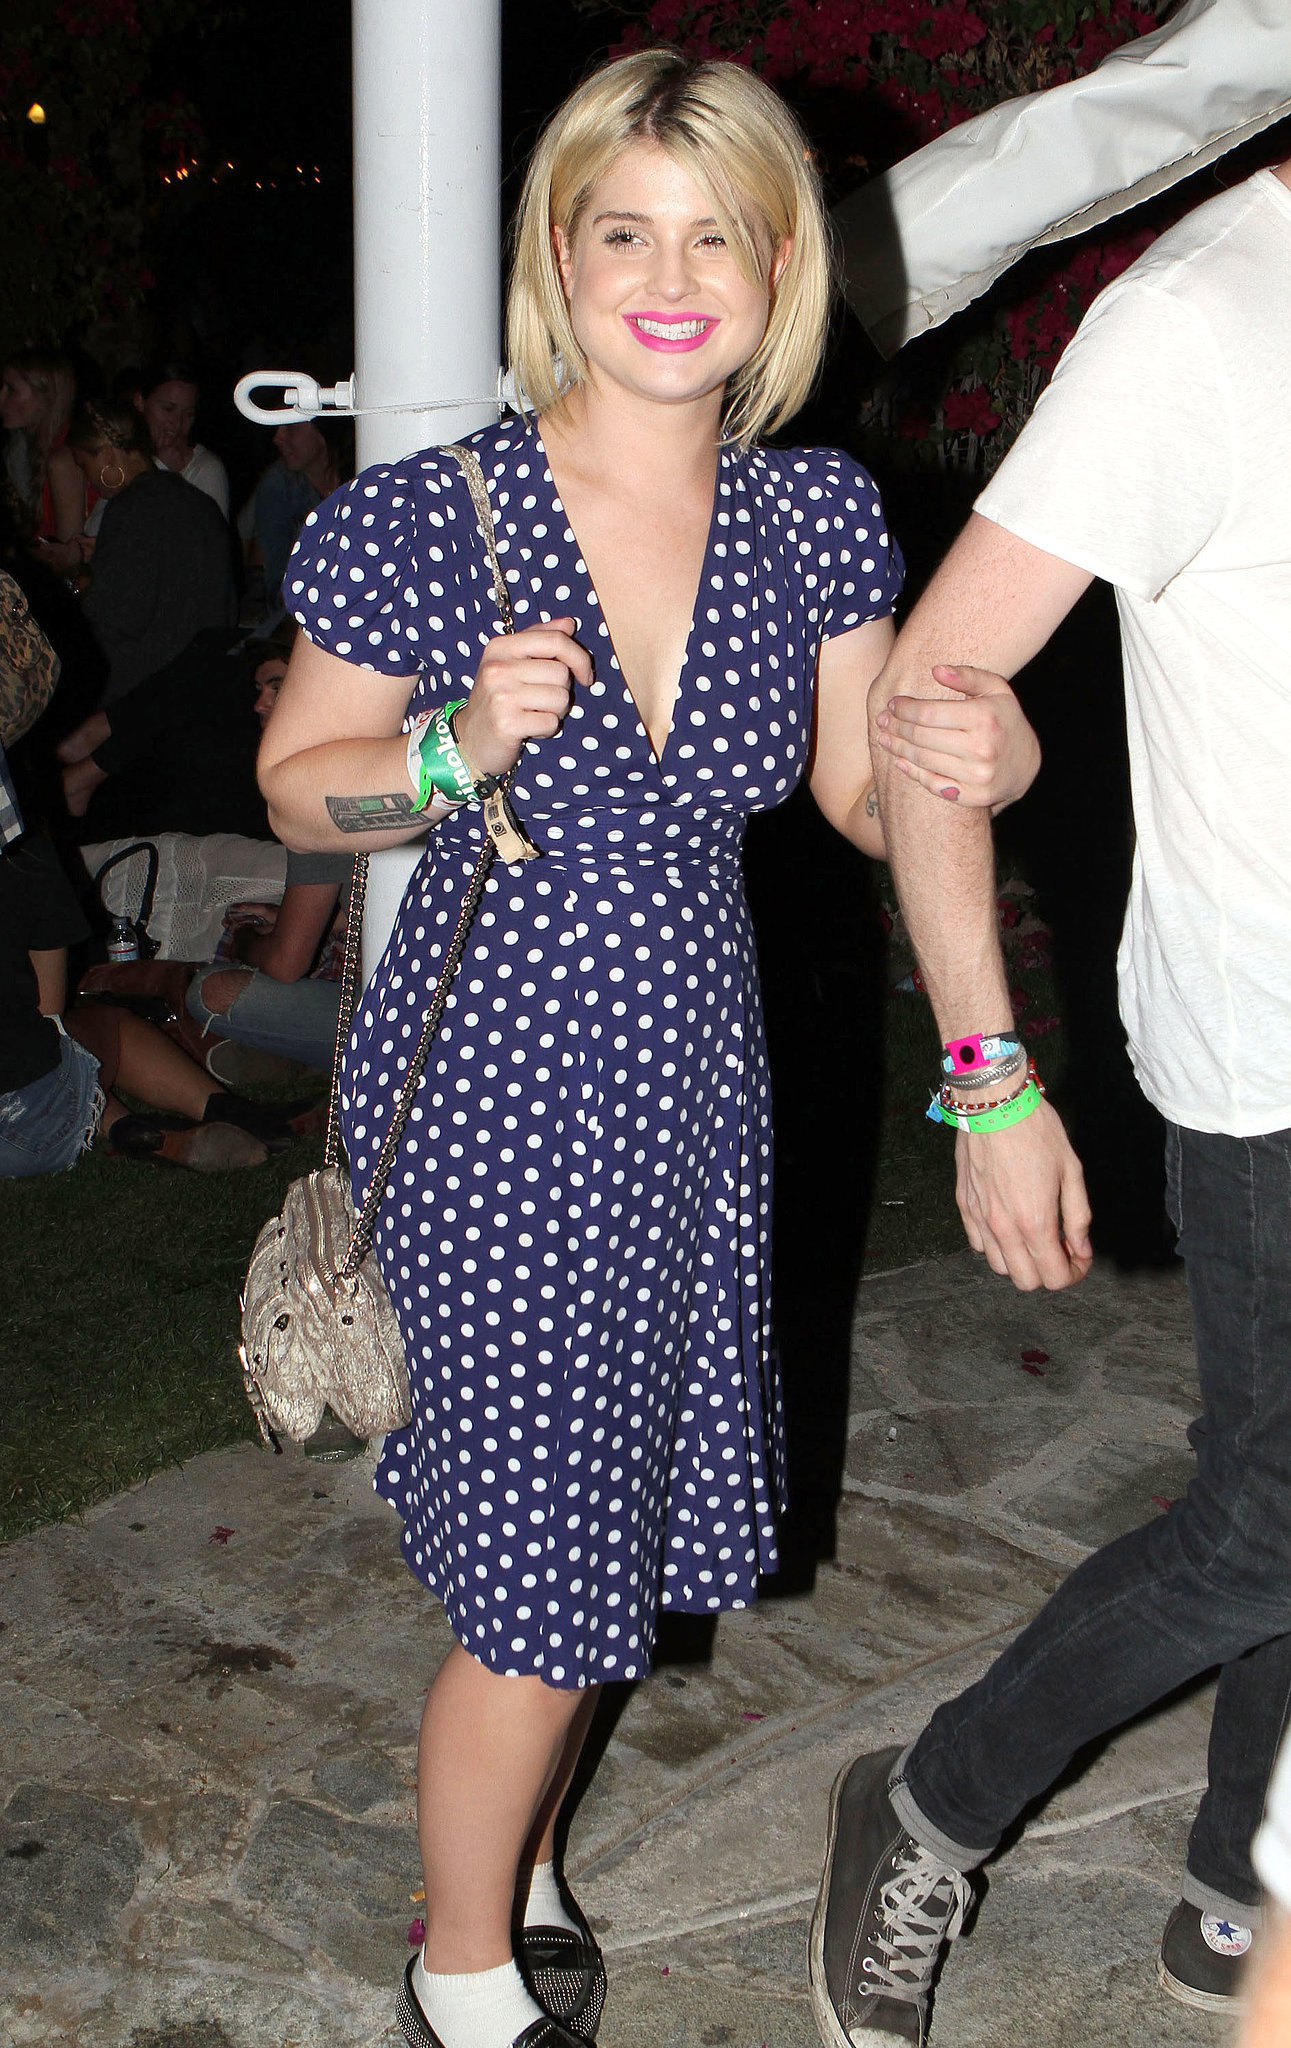 Kelly Osbourne wore polka dots in 2011.